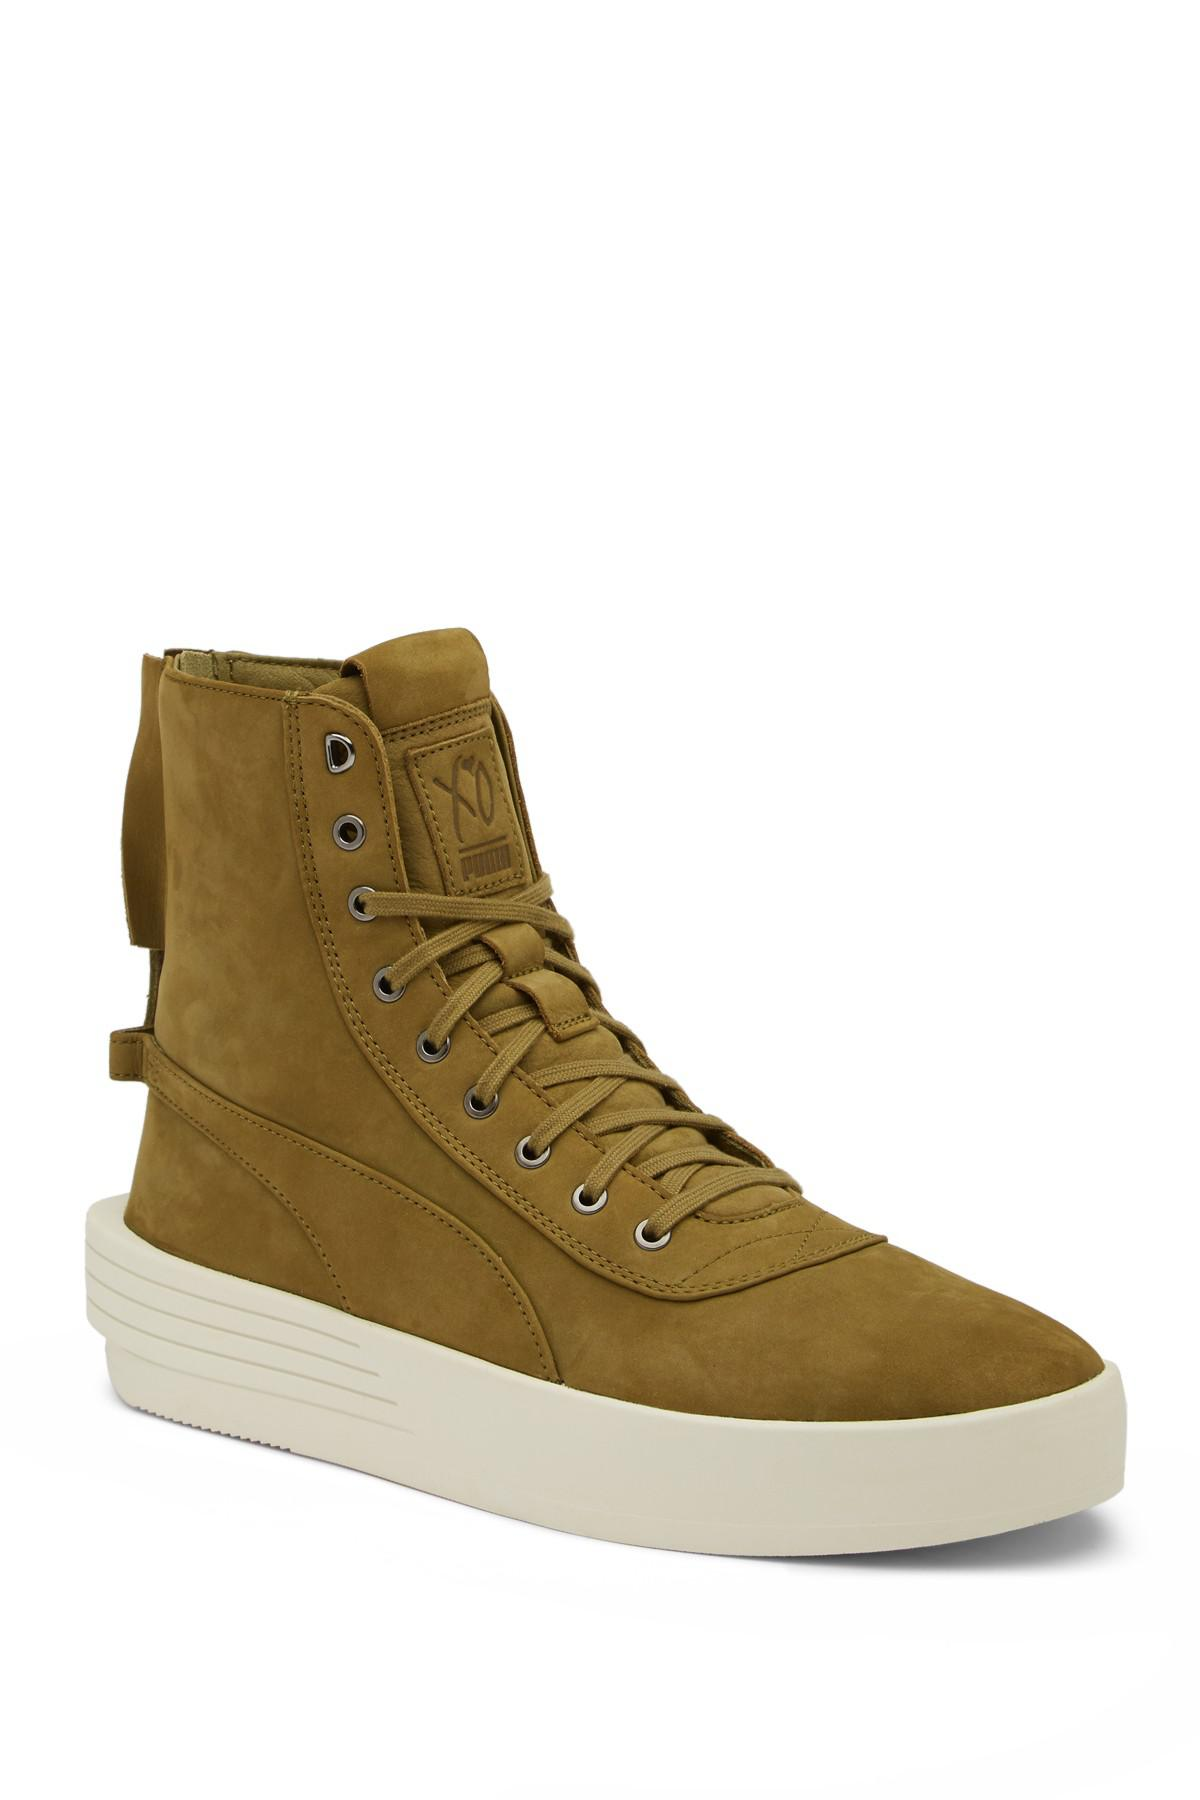 Lyst - Puma Puma X Xo By The Weeknd Parallel Sneaker Boot in Green e7714f5ac